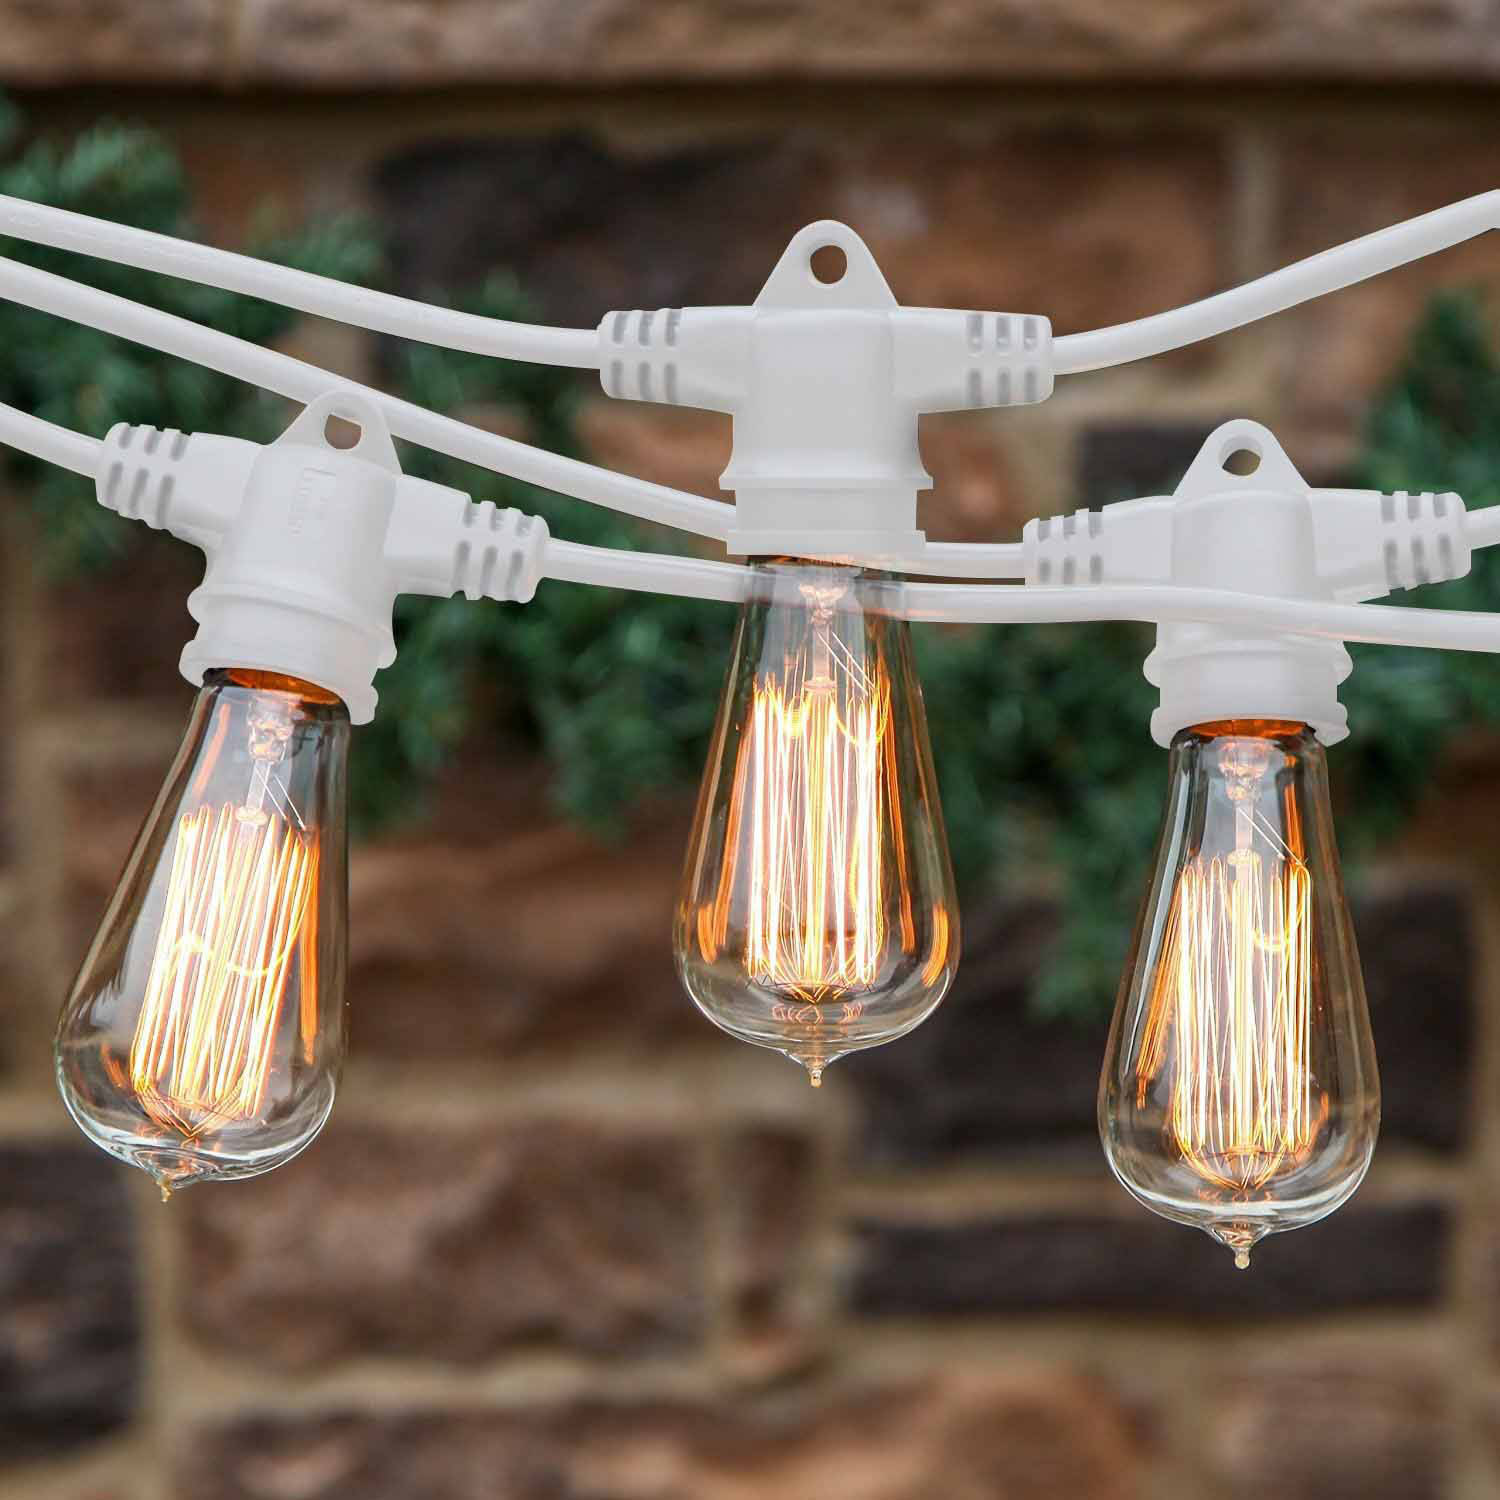 Brightech Ambience Pro Vintage Edition with WeatherTite Technology Outdoor Weatherproof Commercial Grade String Lights with Included Antique Edison Bulbs